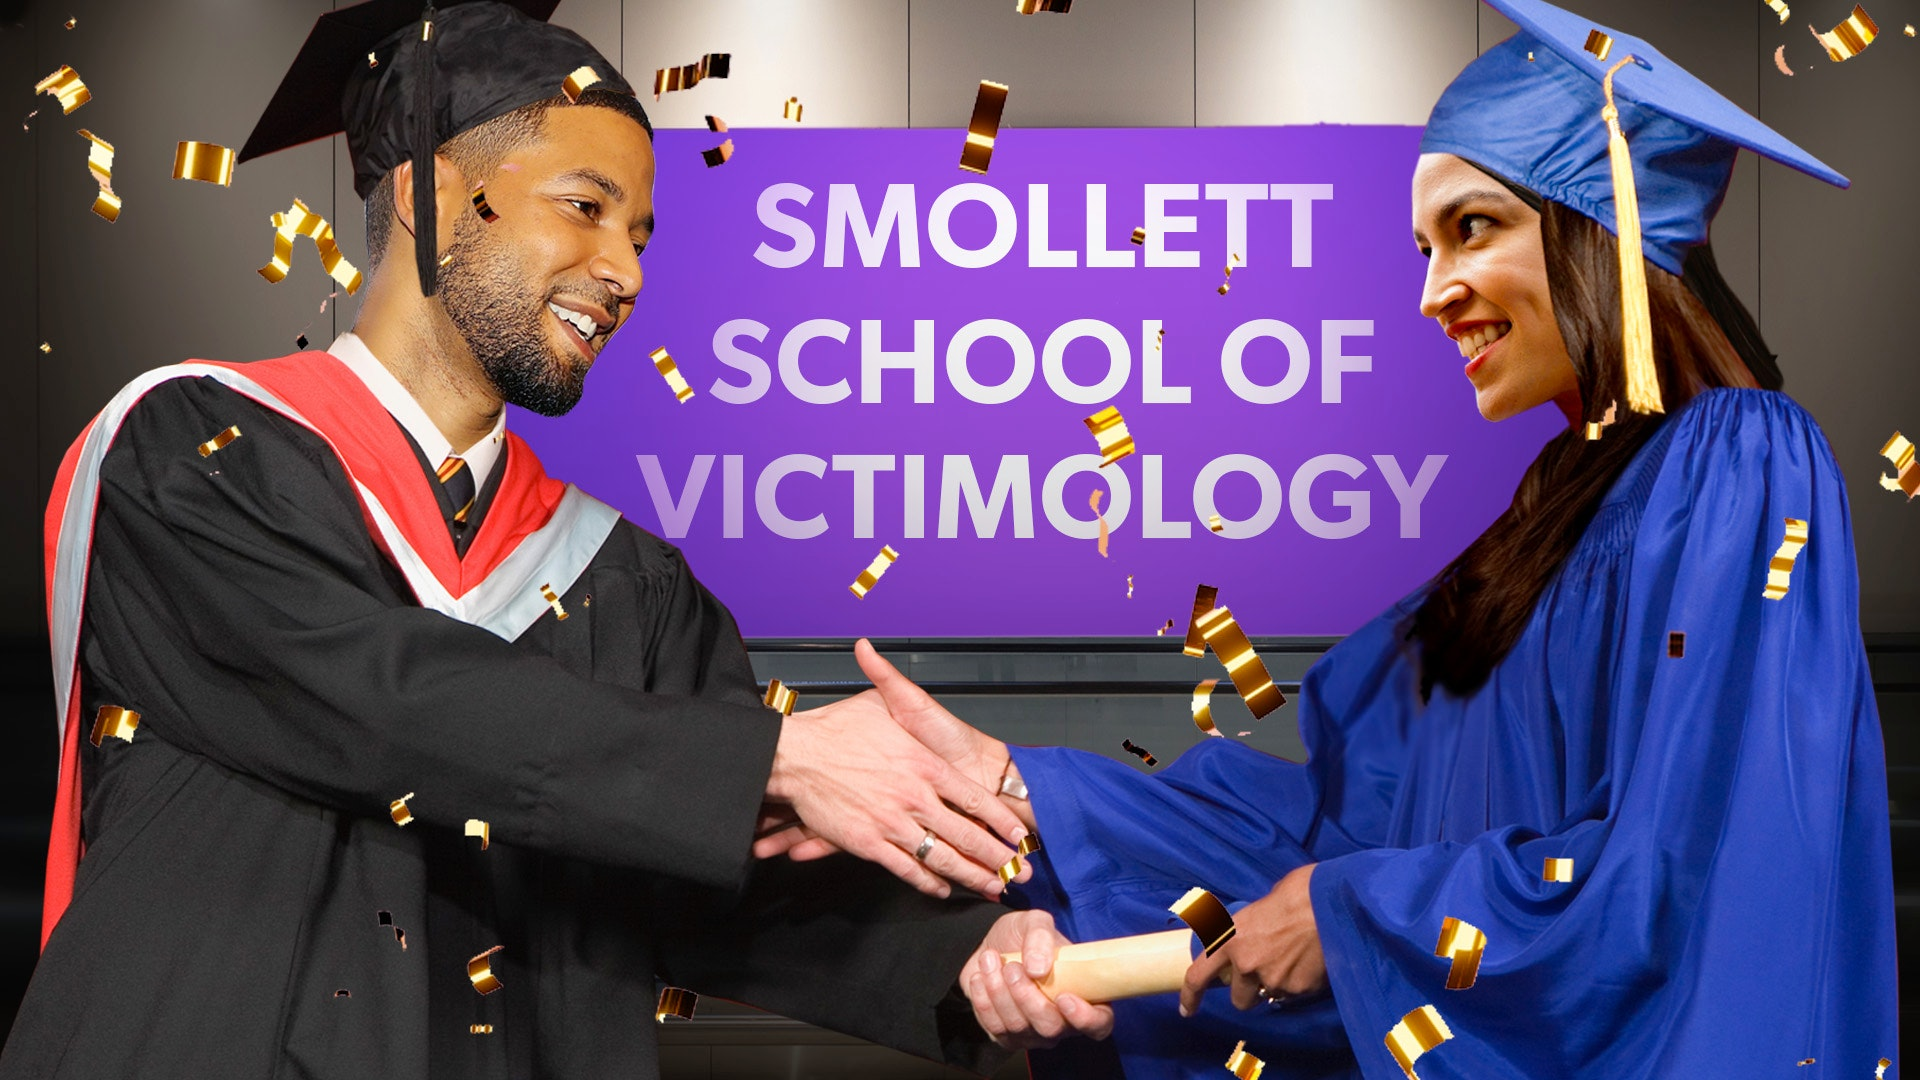 Ep. 651 - AOC Attends The Jussie Smollett School Of Victimology